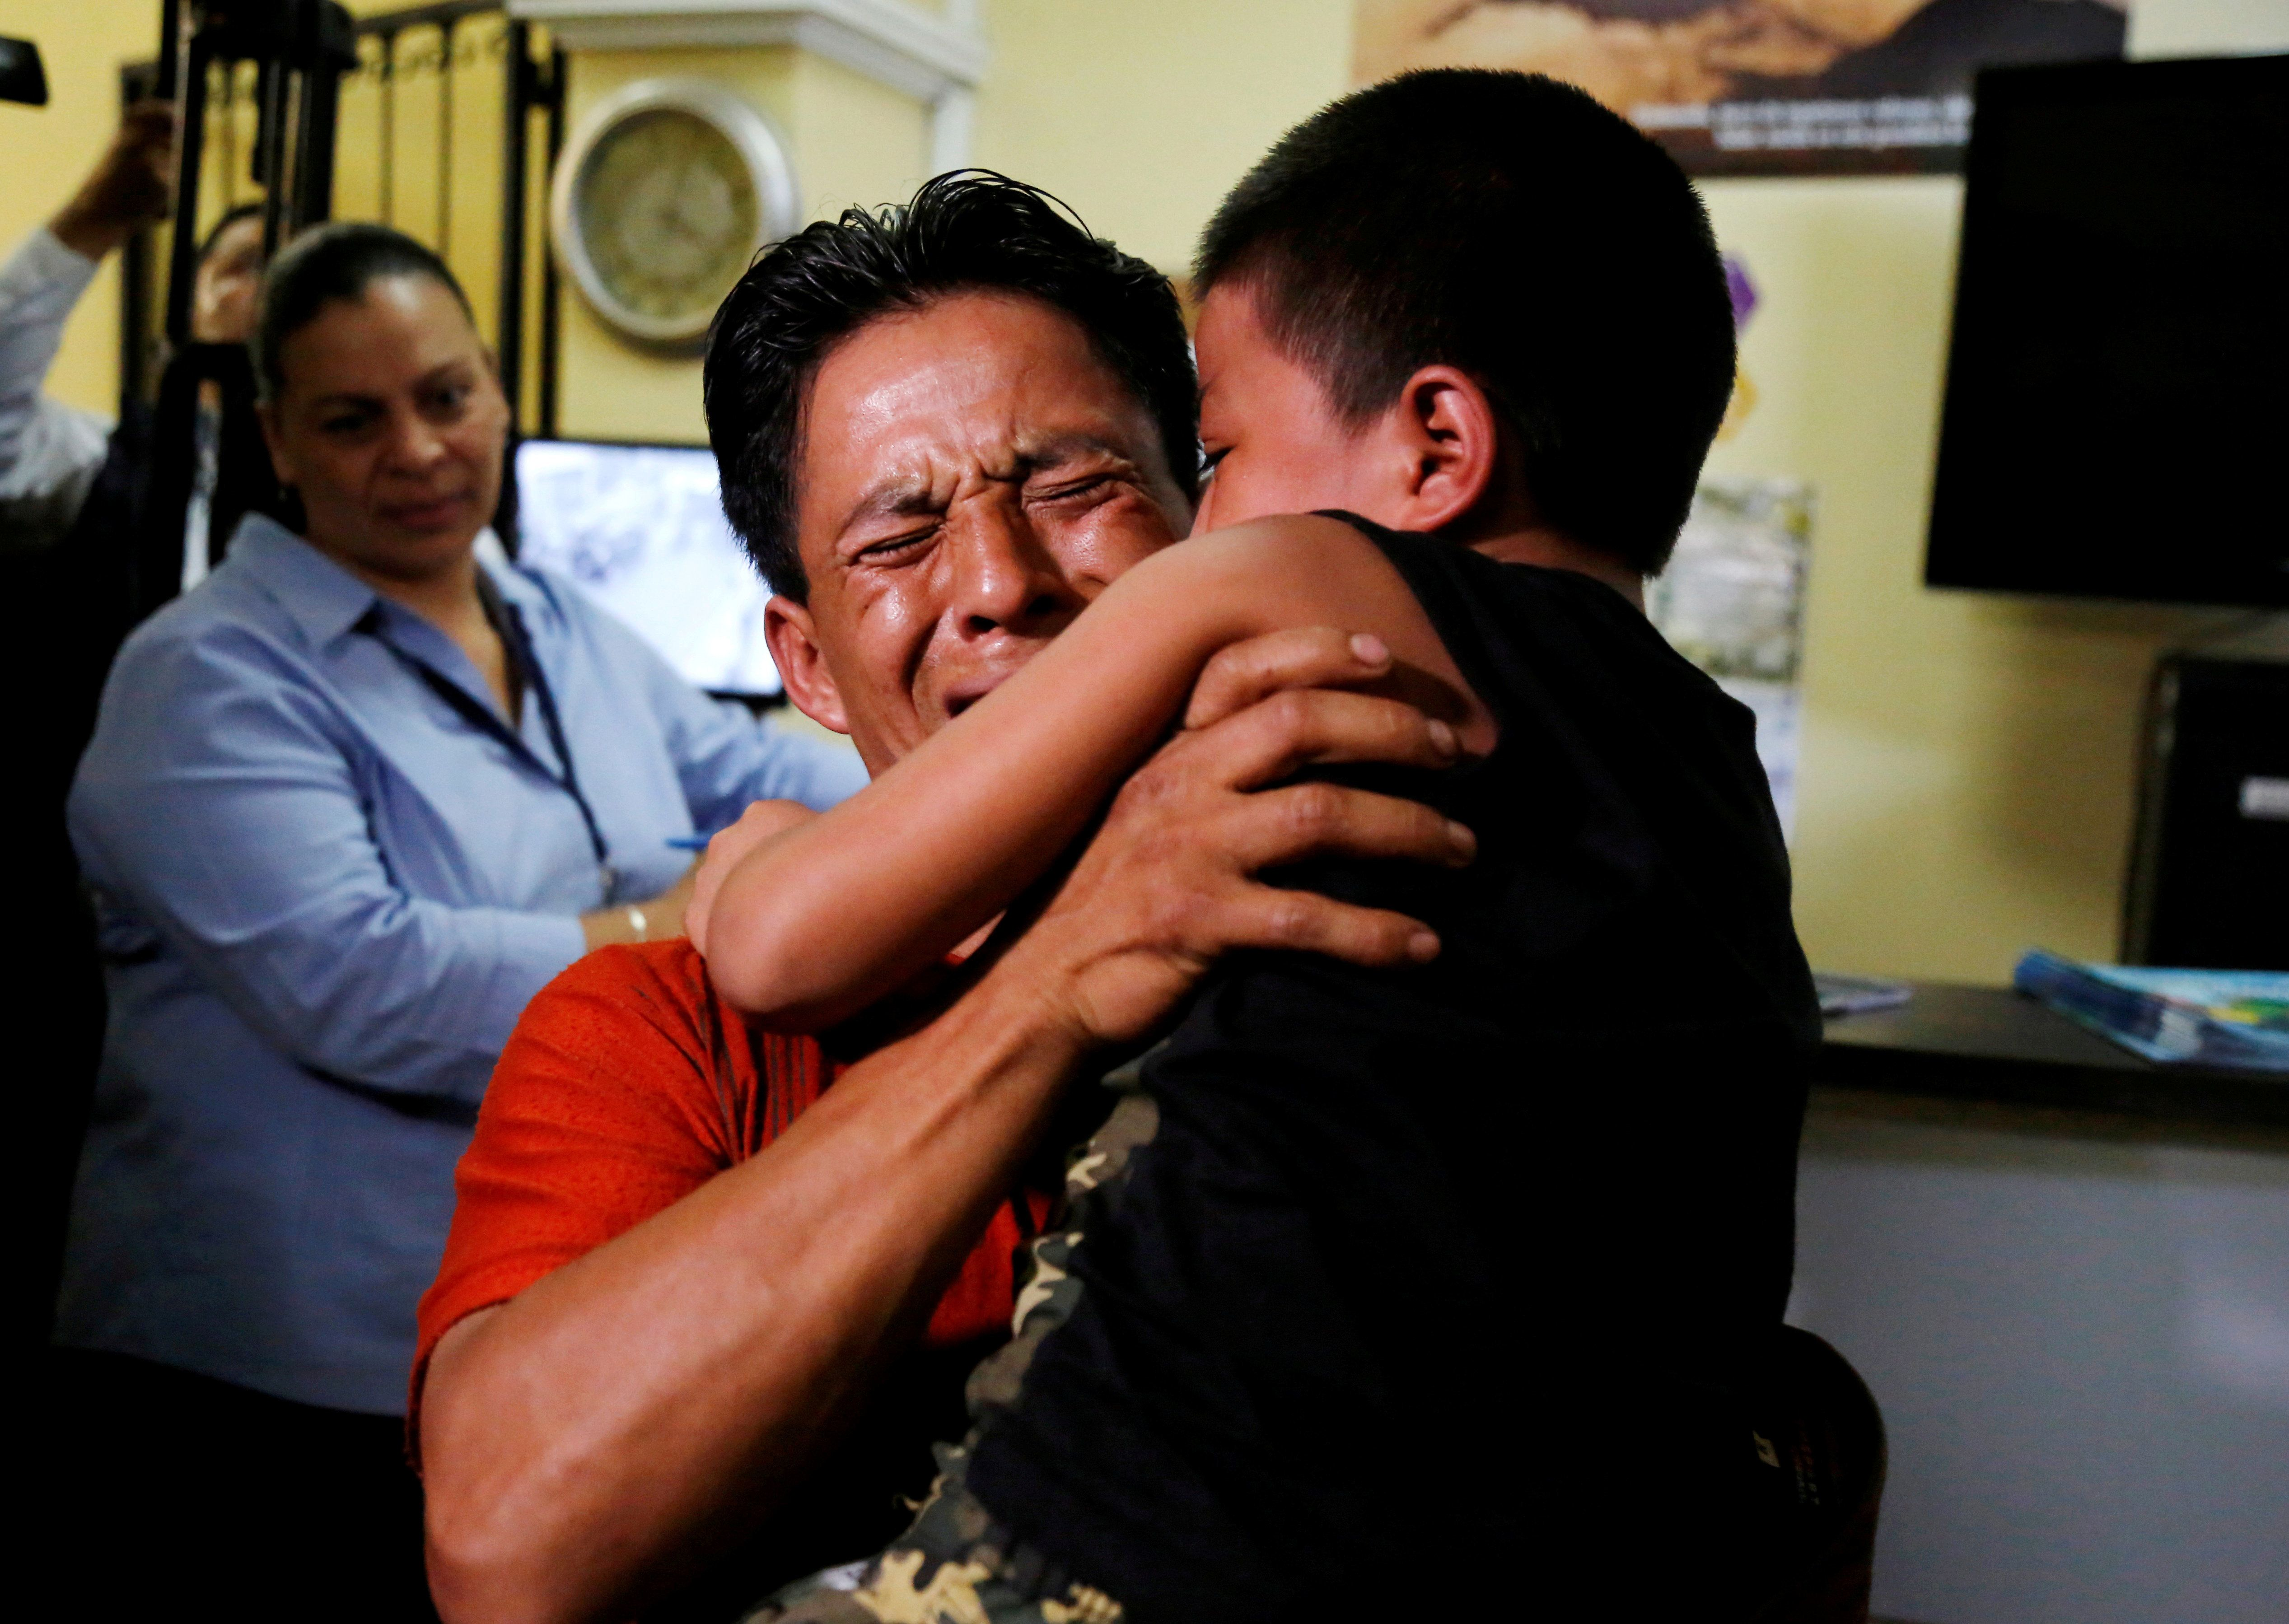 Gilberto Calmo hugs his son Franklin Noe Calmo, who was sent back from detention on Tuesday, after they were separated at the